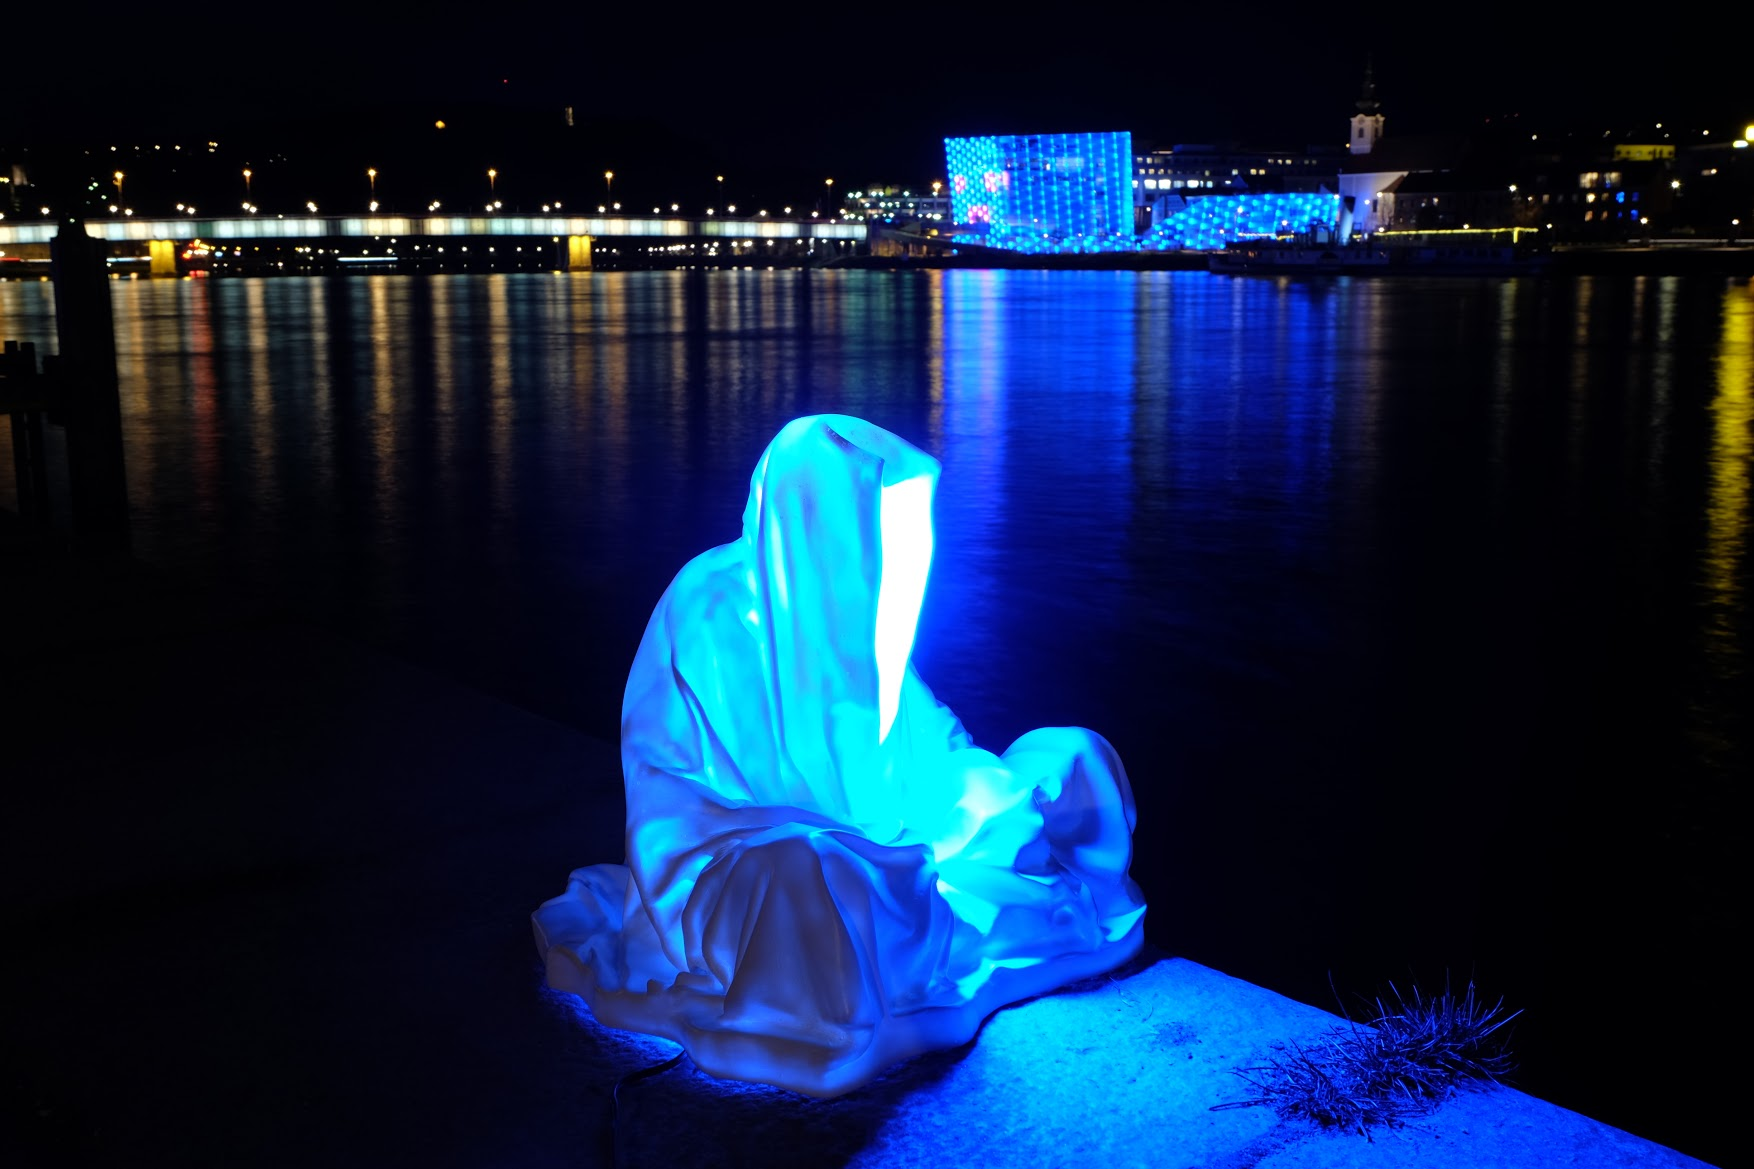 guardians of time manfred kielnhofer linz light art contemporary art sculpture statue modern design lamp light lumina 1792